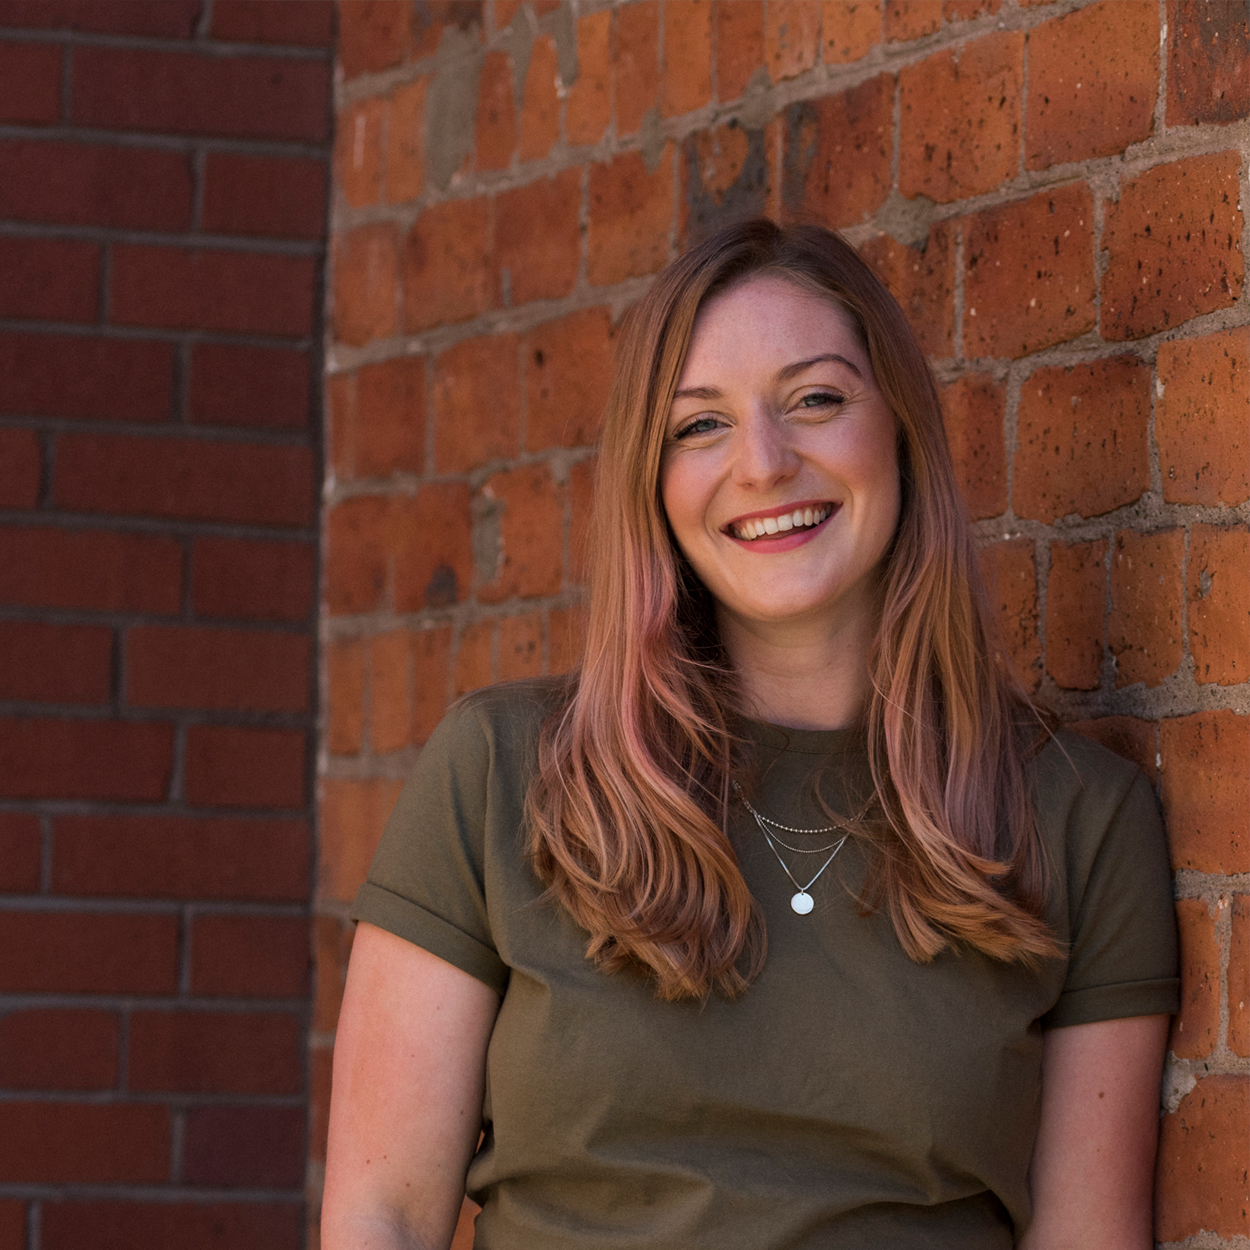 Copy of Lynsey Pritchard - Snr. Account Manager